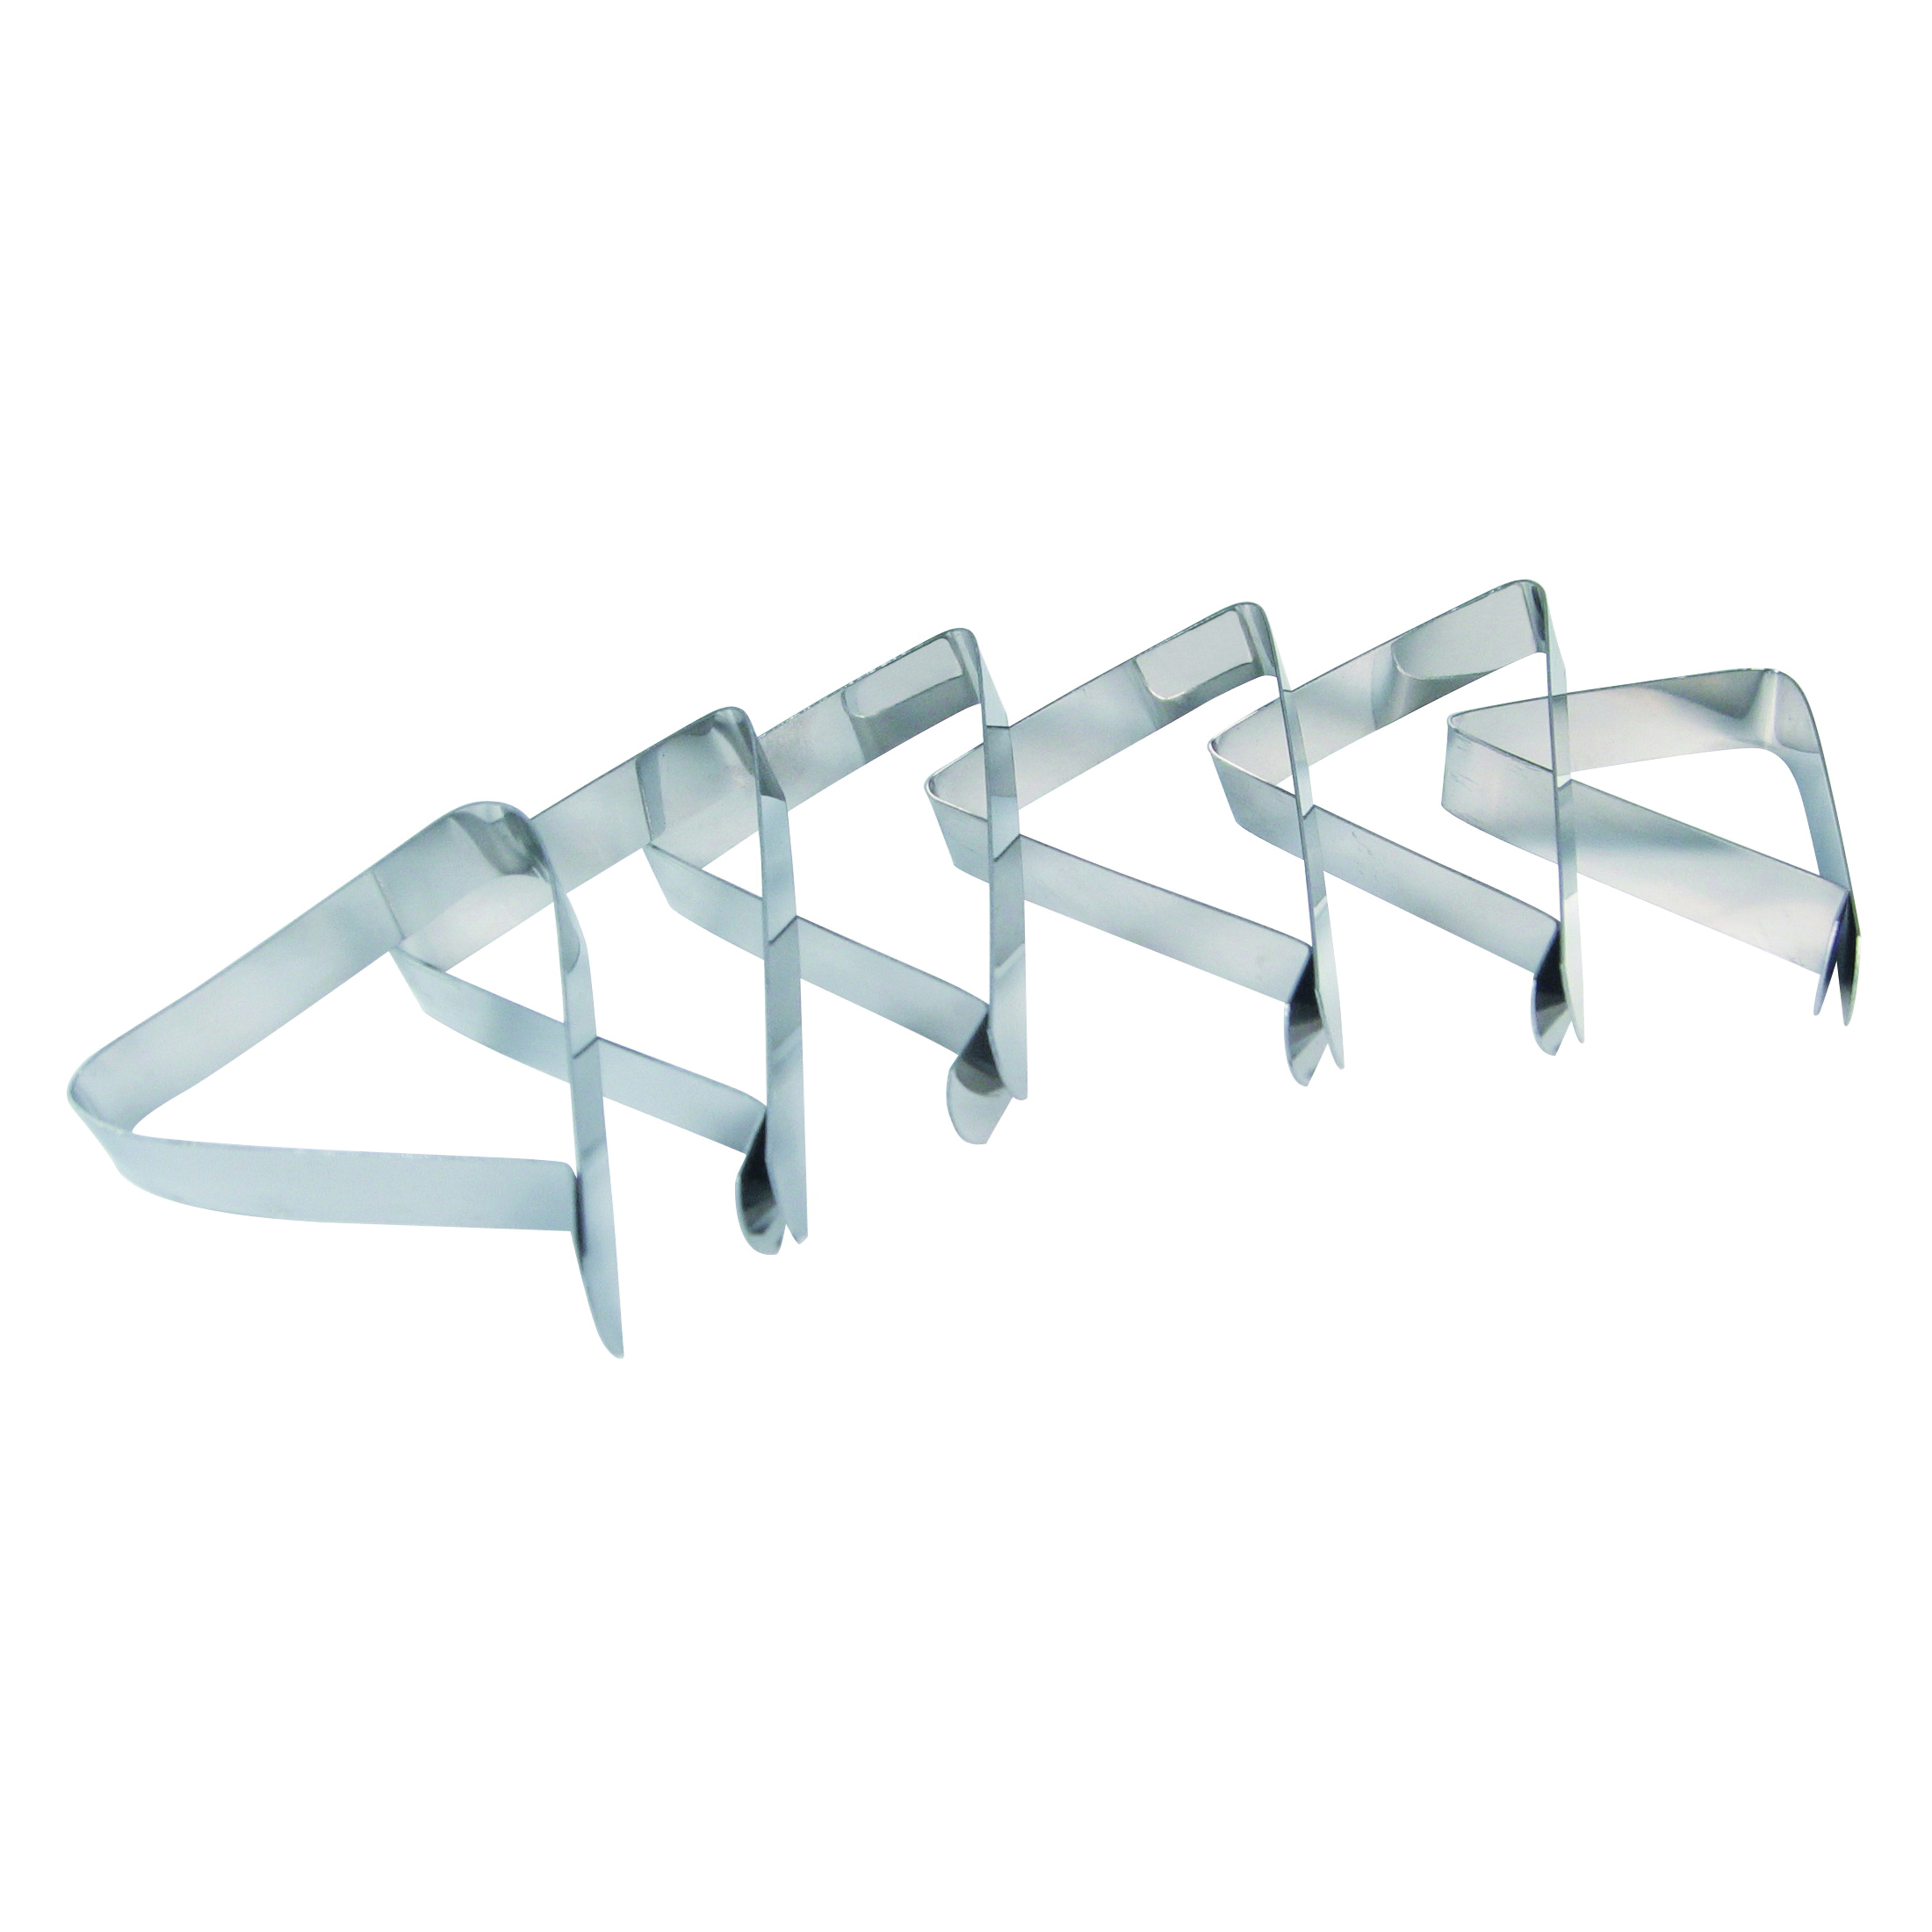 Picture of Onward 14864 Table Cloth Clip Kit, Stainless Steel